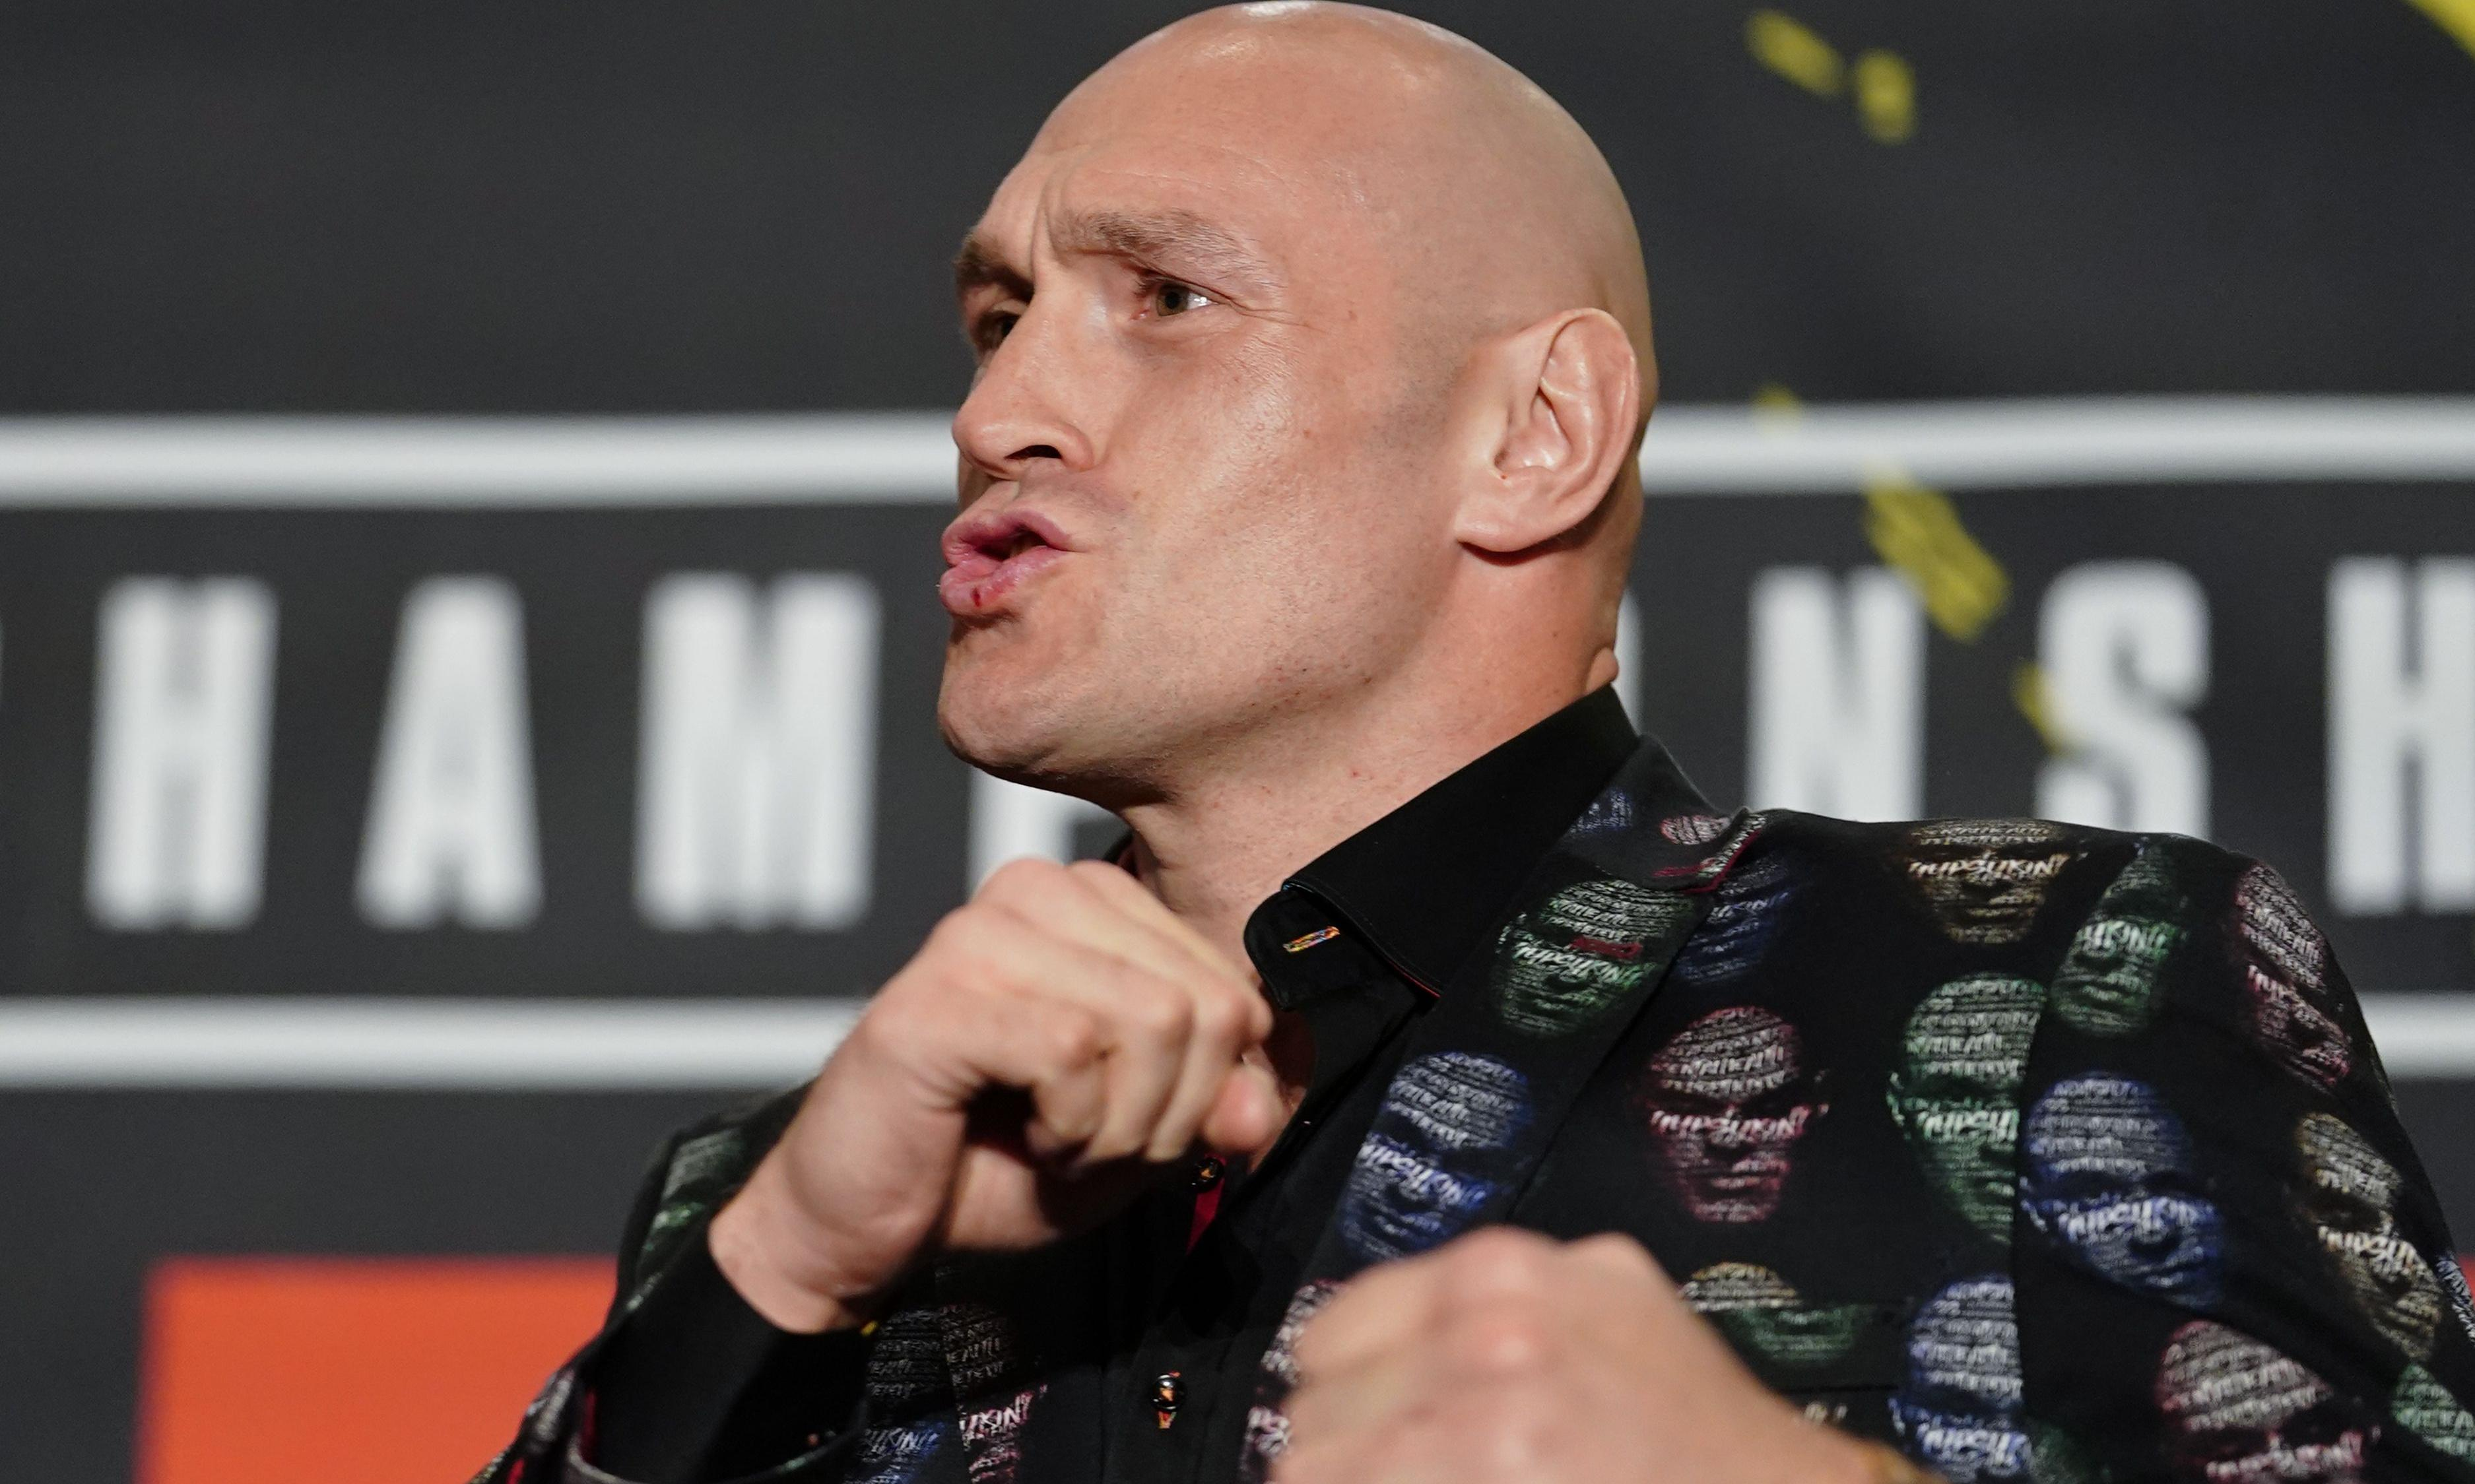 'I'm going to rip his heart out': Fury cranks up war of words with Wilder